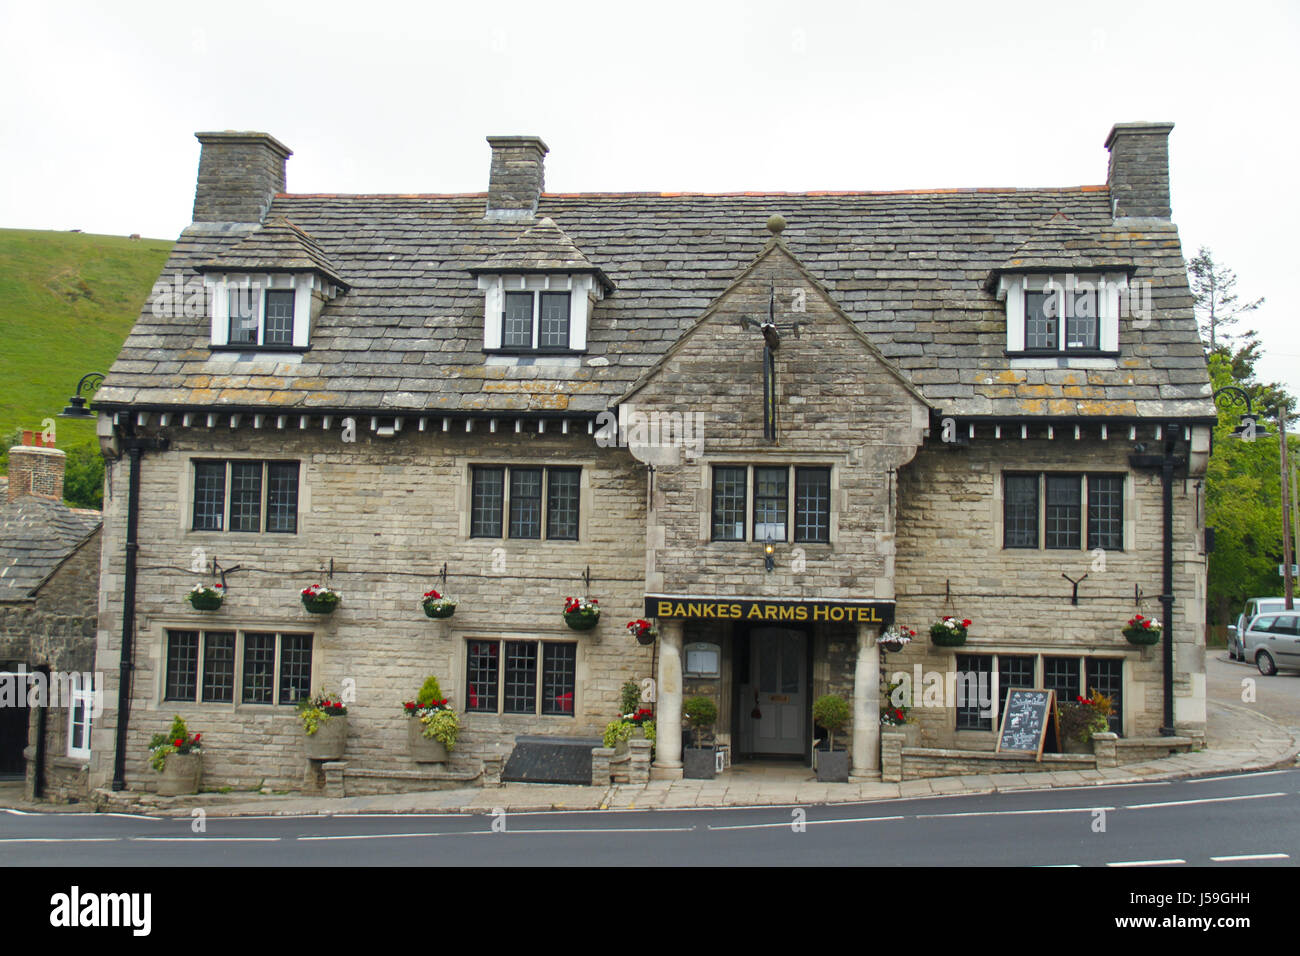 Swanage, UK -  12 May: The Bankes Arm Hotel on East Street (A351) in the Corfe Castle village. The building is constructed - Stock Image